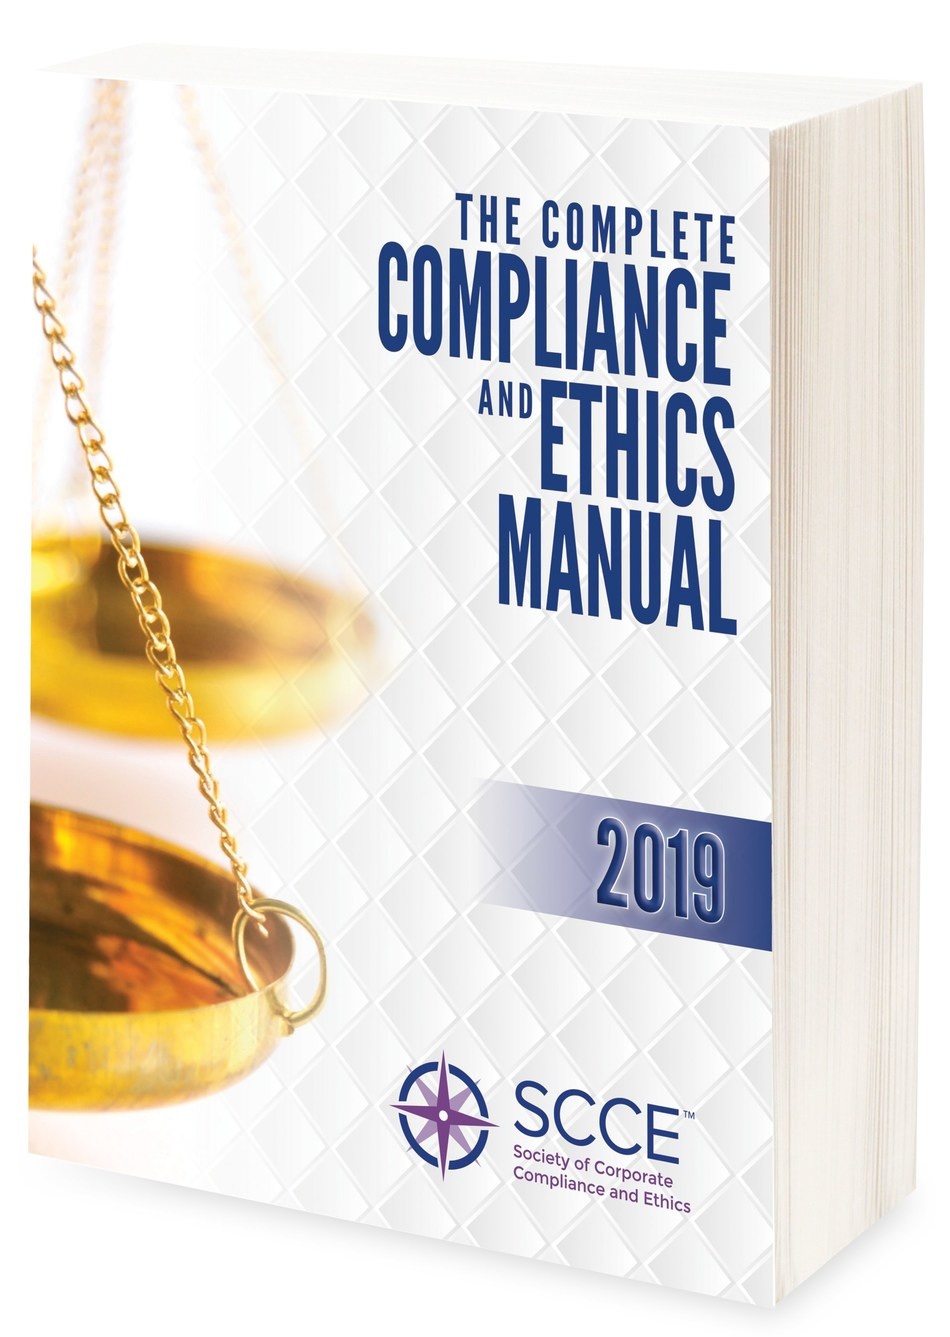 The Complete Compliance and Ethics Manual - upgraded in print and online